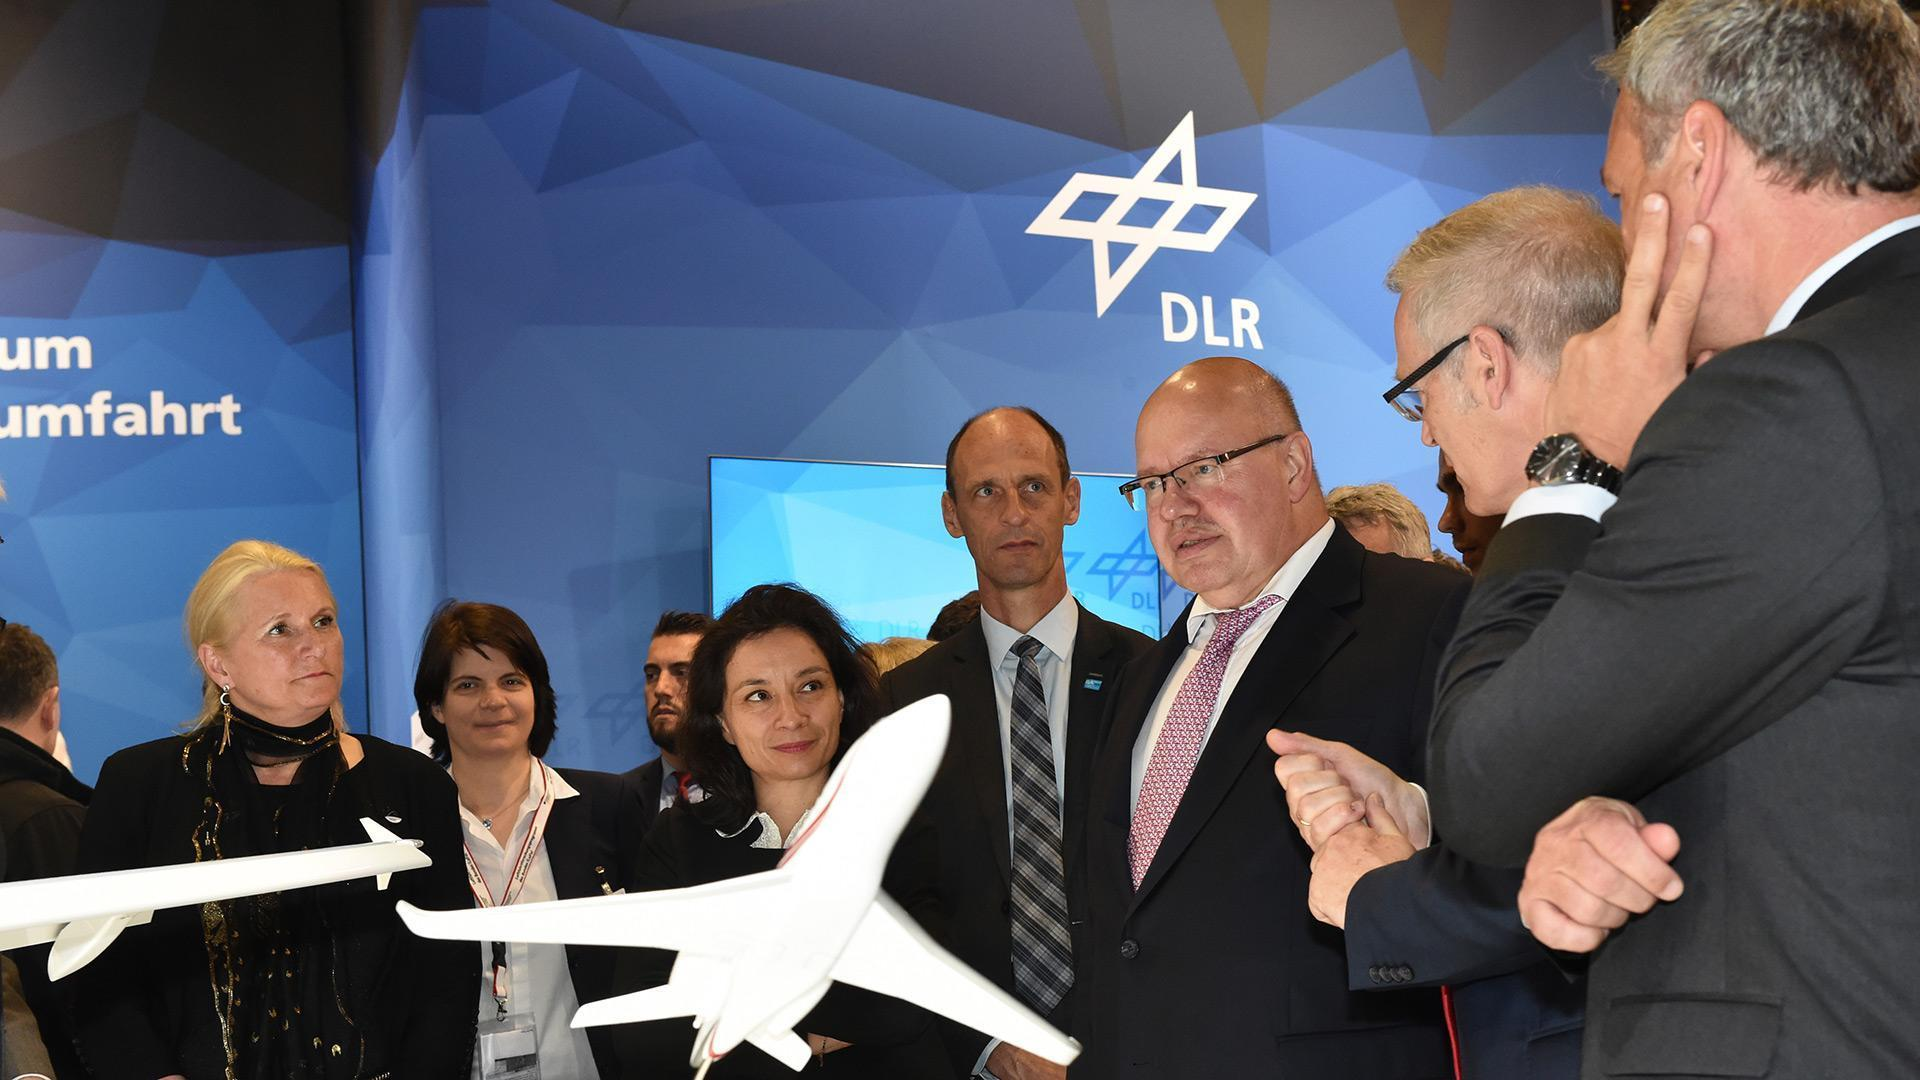 Federal Minister for Economic Affairs and Energy Peter Altmaier visits the DLR stand at ILA